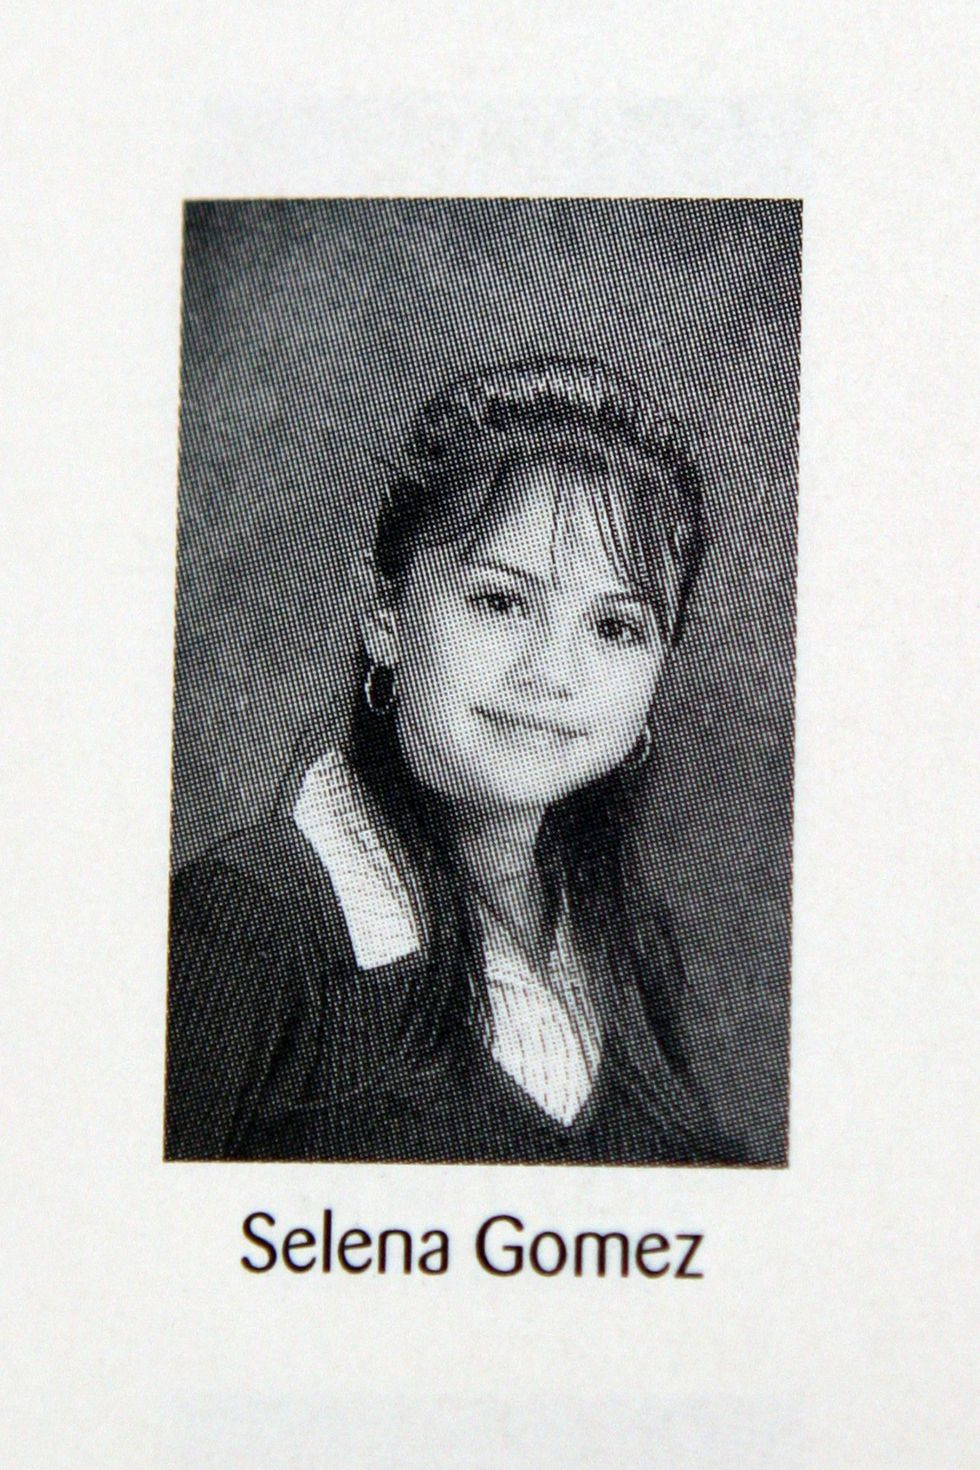 Photo: Selena Gomez yearbook